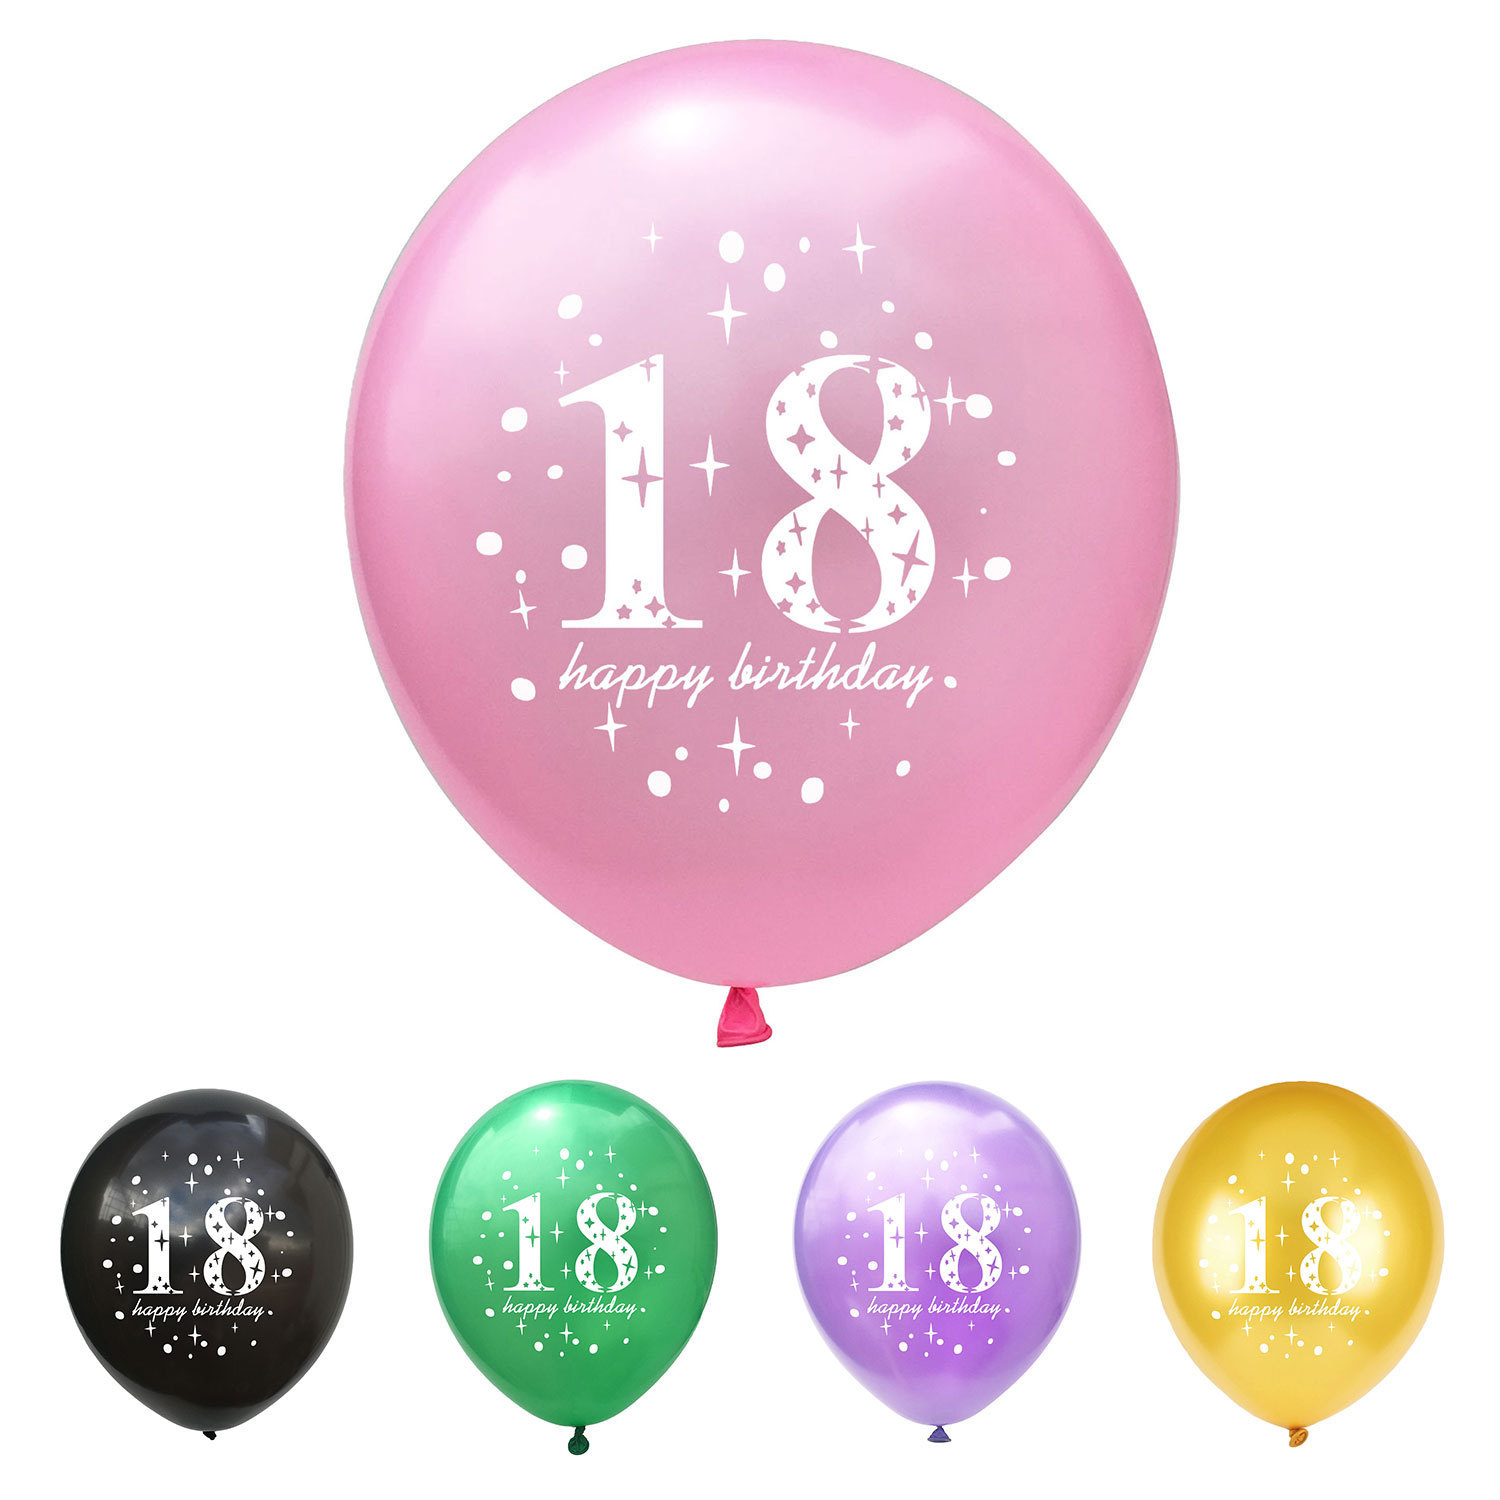 10pc Happy <font><b>18th</b></font> <font><b>Birthday</b></font> Latex Number Balloon 18 Years Old Balloons <font><b>Birthday</b></font> <font><b>Decoration</b></font> <font><b>Birthday</b></font> Party <font><b>Decorations</b></font> Adult Ballons image